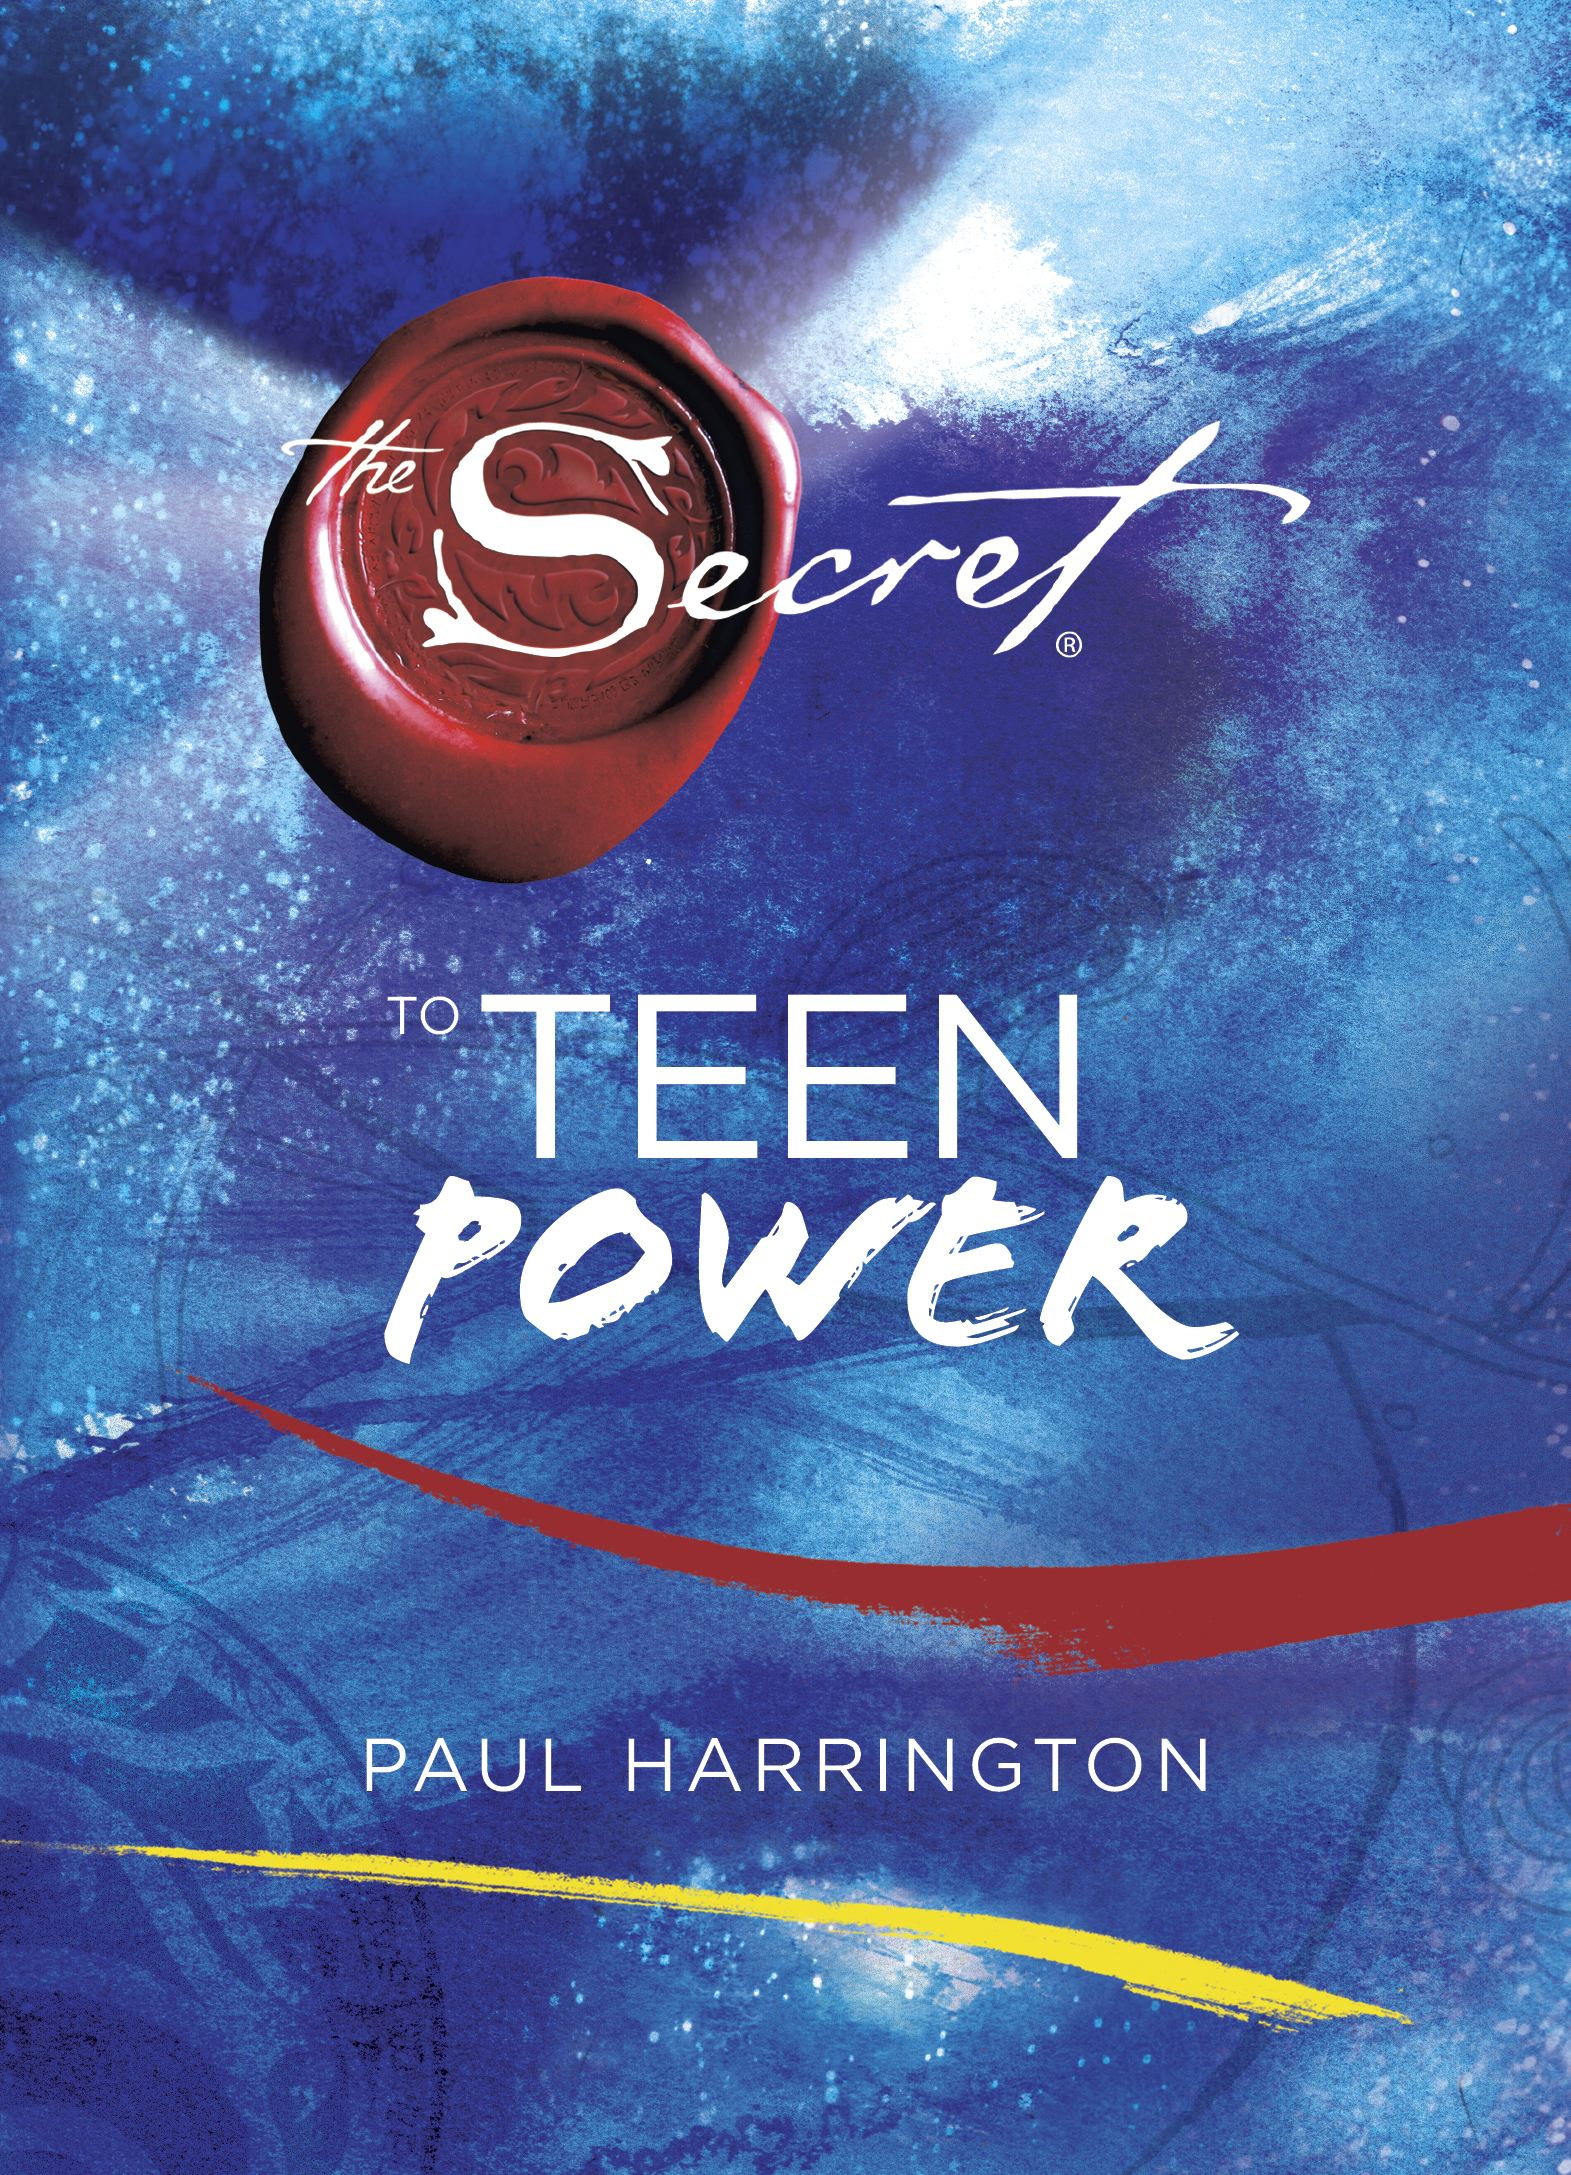 The Secret to Teen Power | Book by Paul Harrington